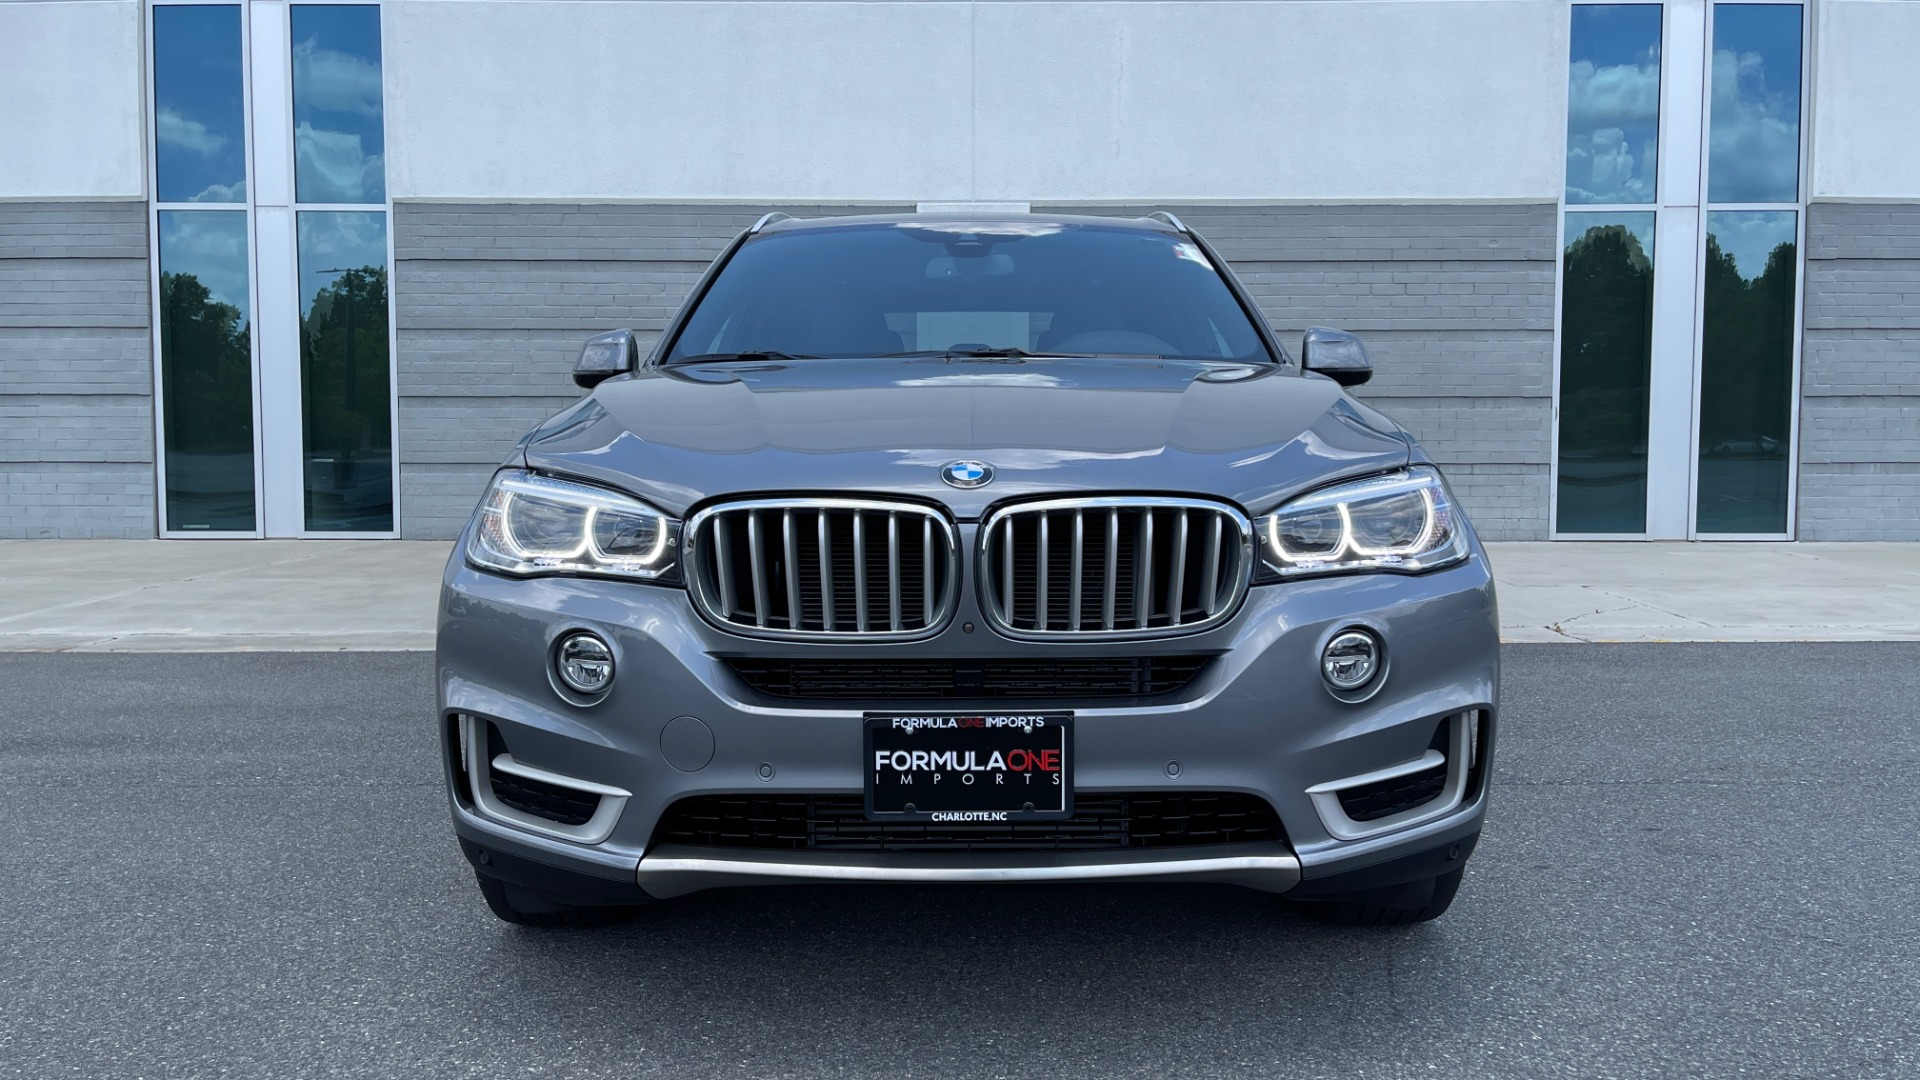 Used 2018 BMW X5 XDRIVE35I PREMIUM / DRVR ASST / WIRELESS CHARGING / CAMERAS for sale $46,995 at Formula Imports in Charlotte NC 28227 13